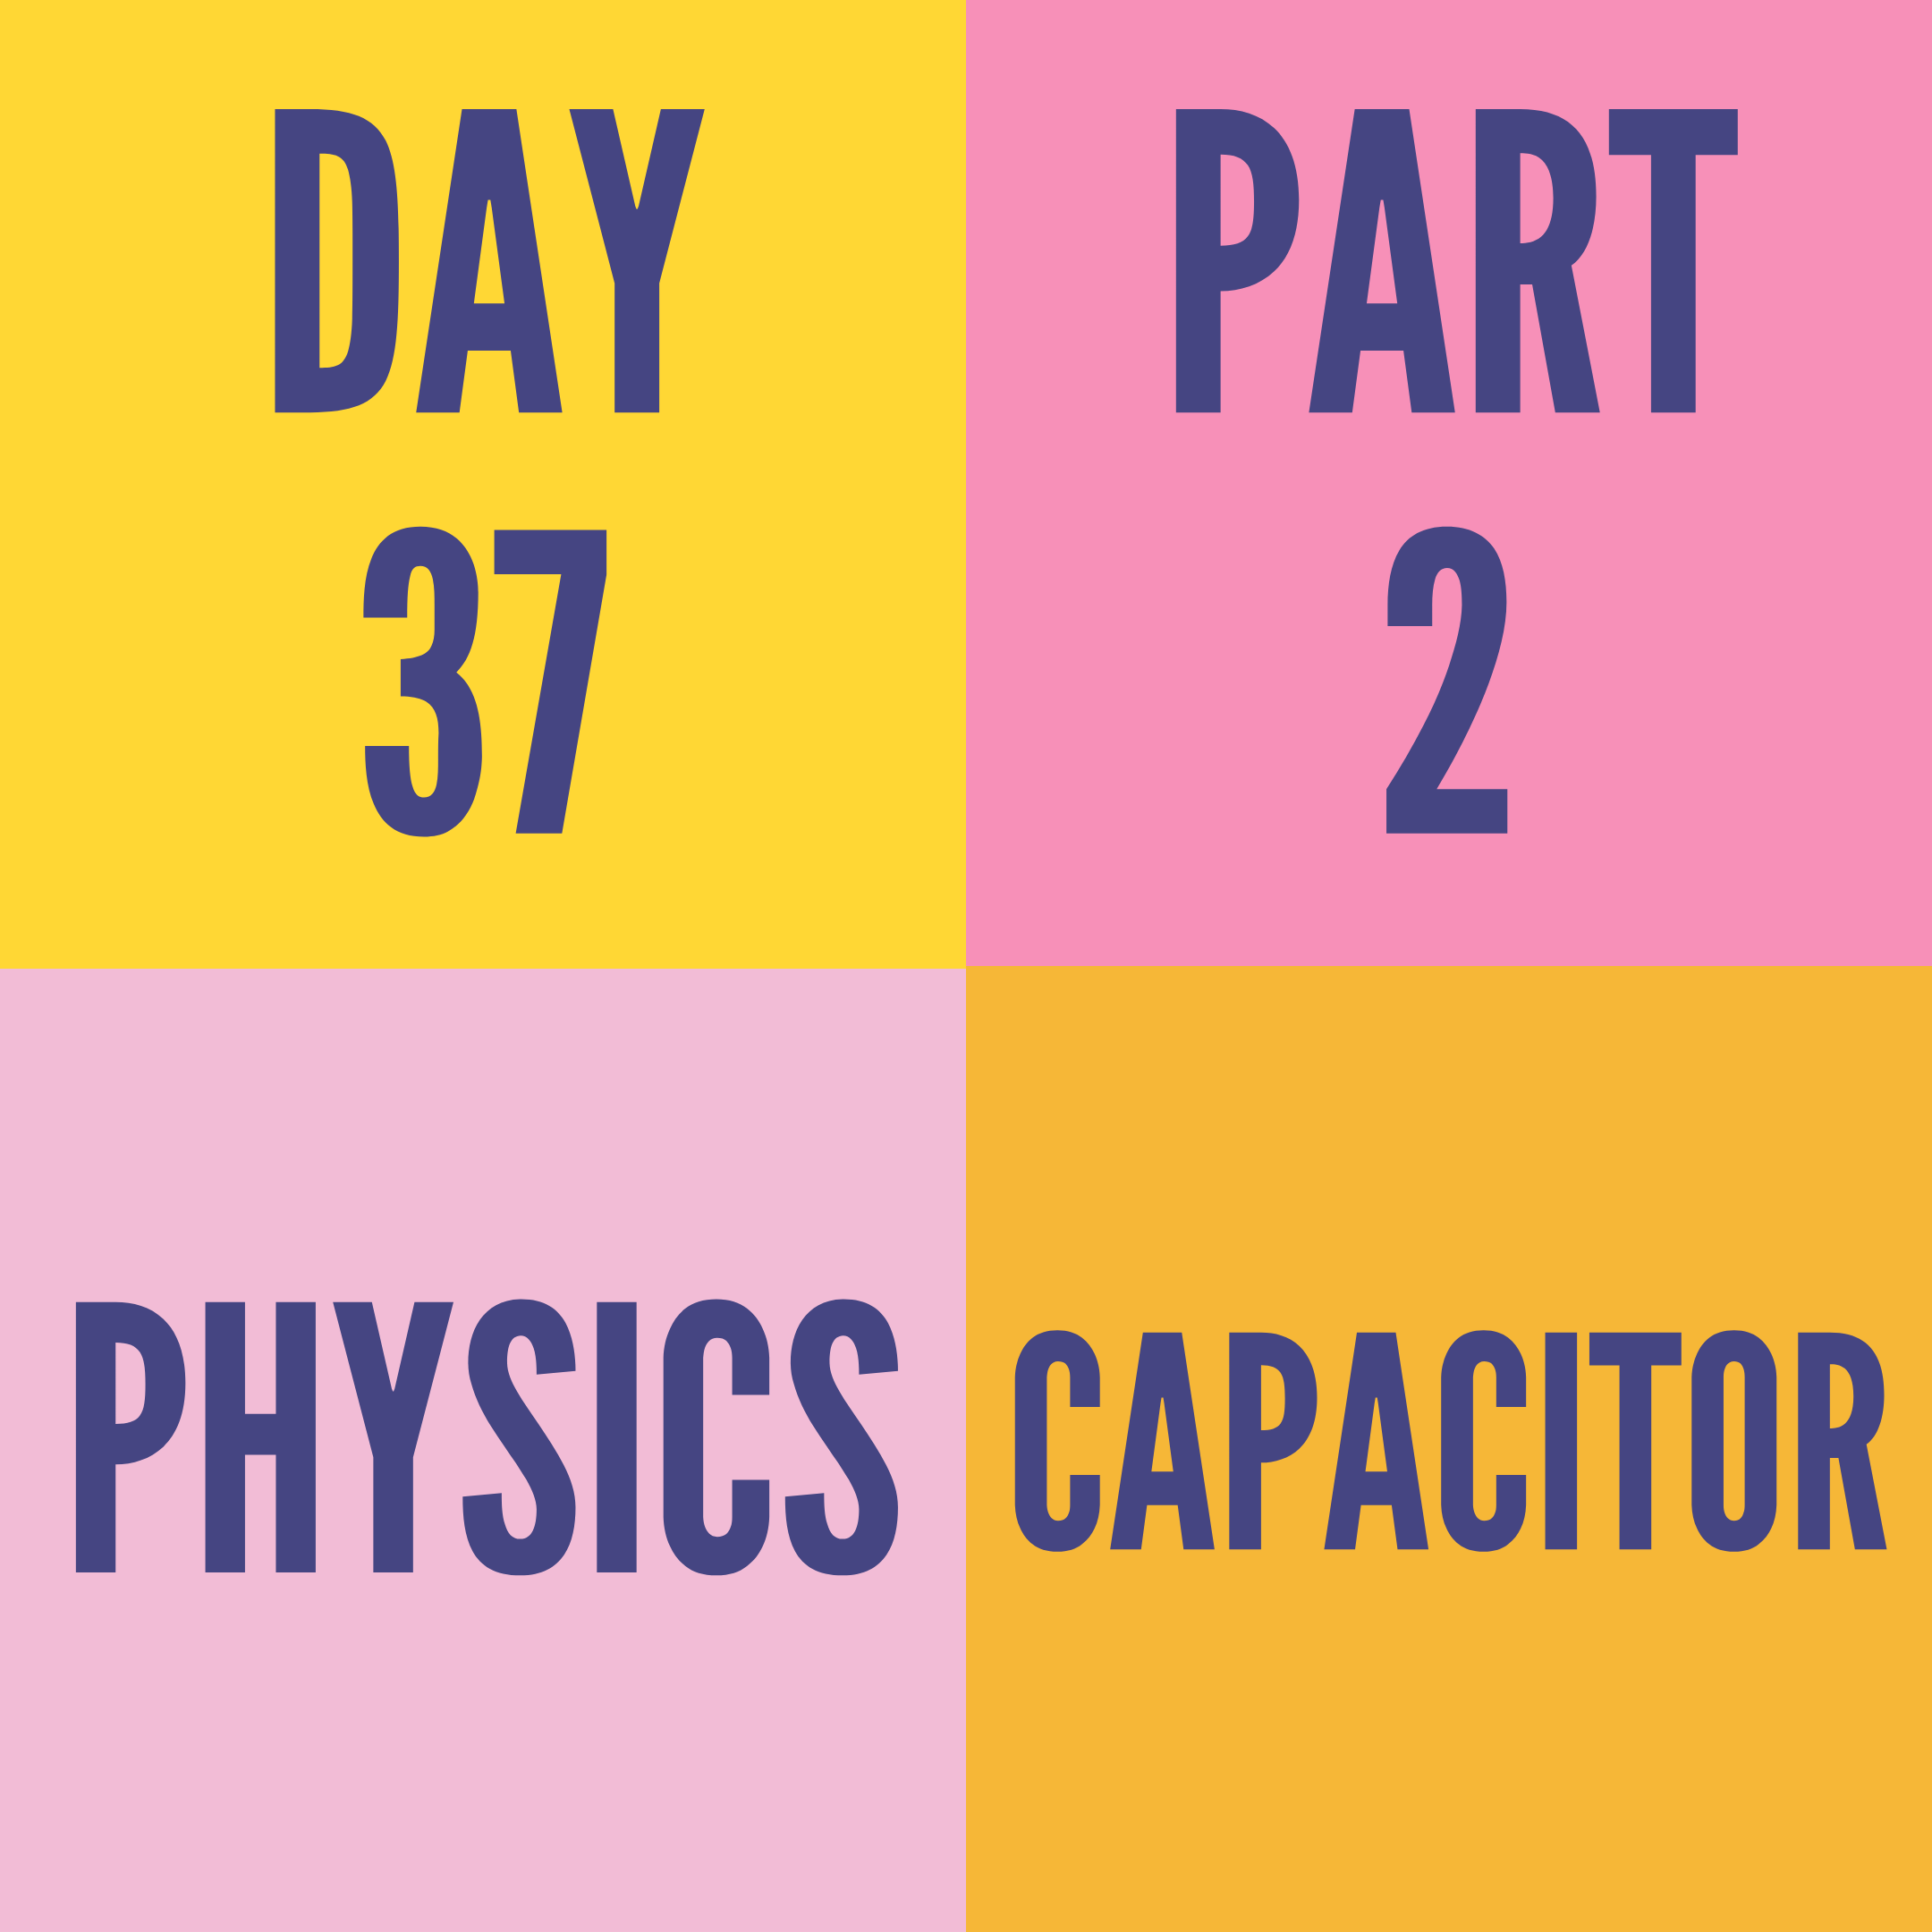 DAY-37 PART-2 CAPACITOR